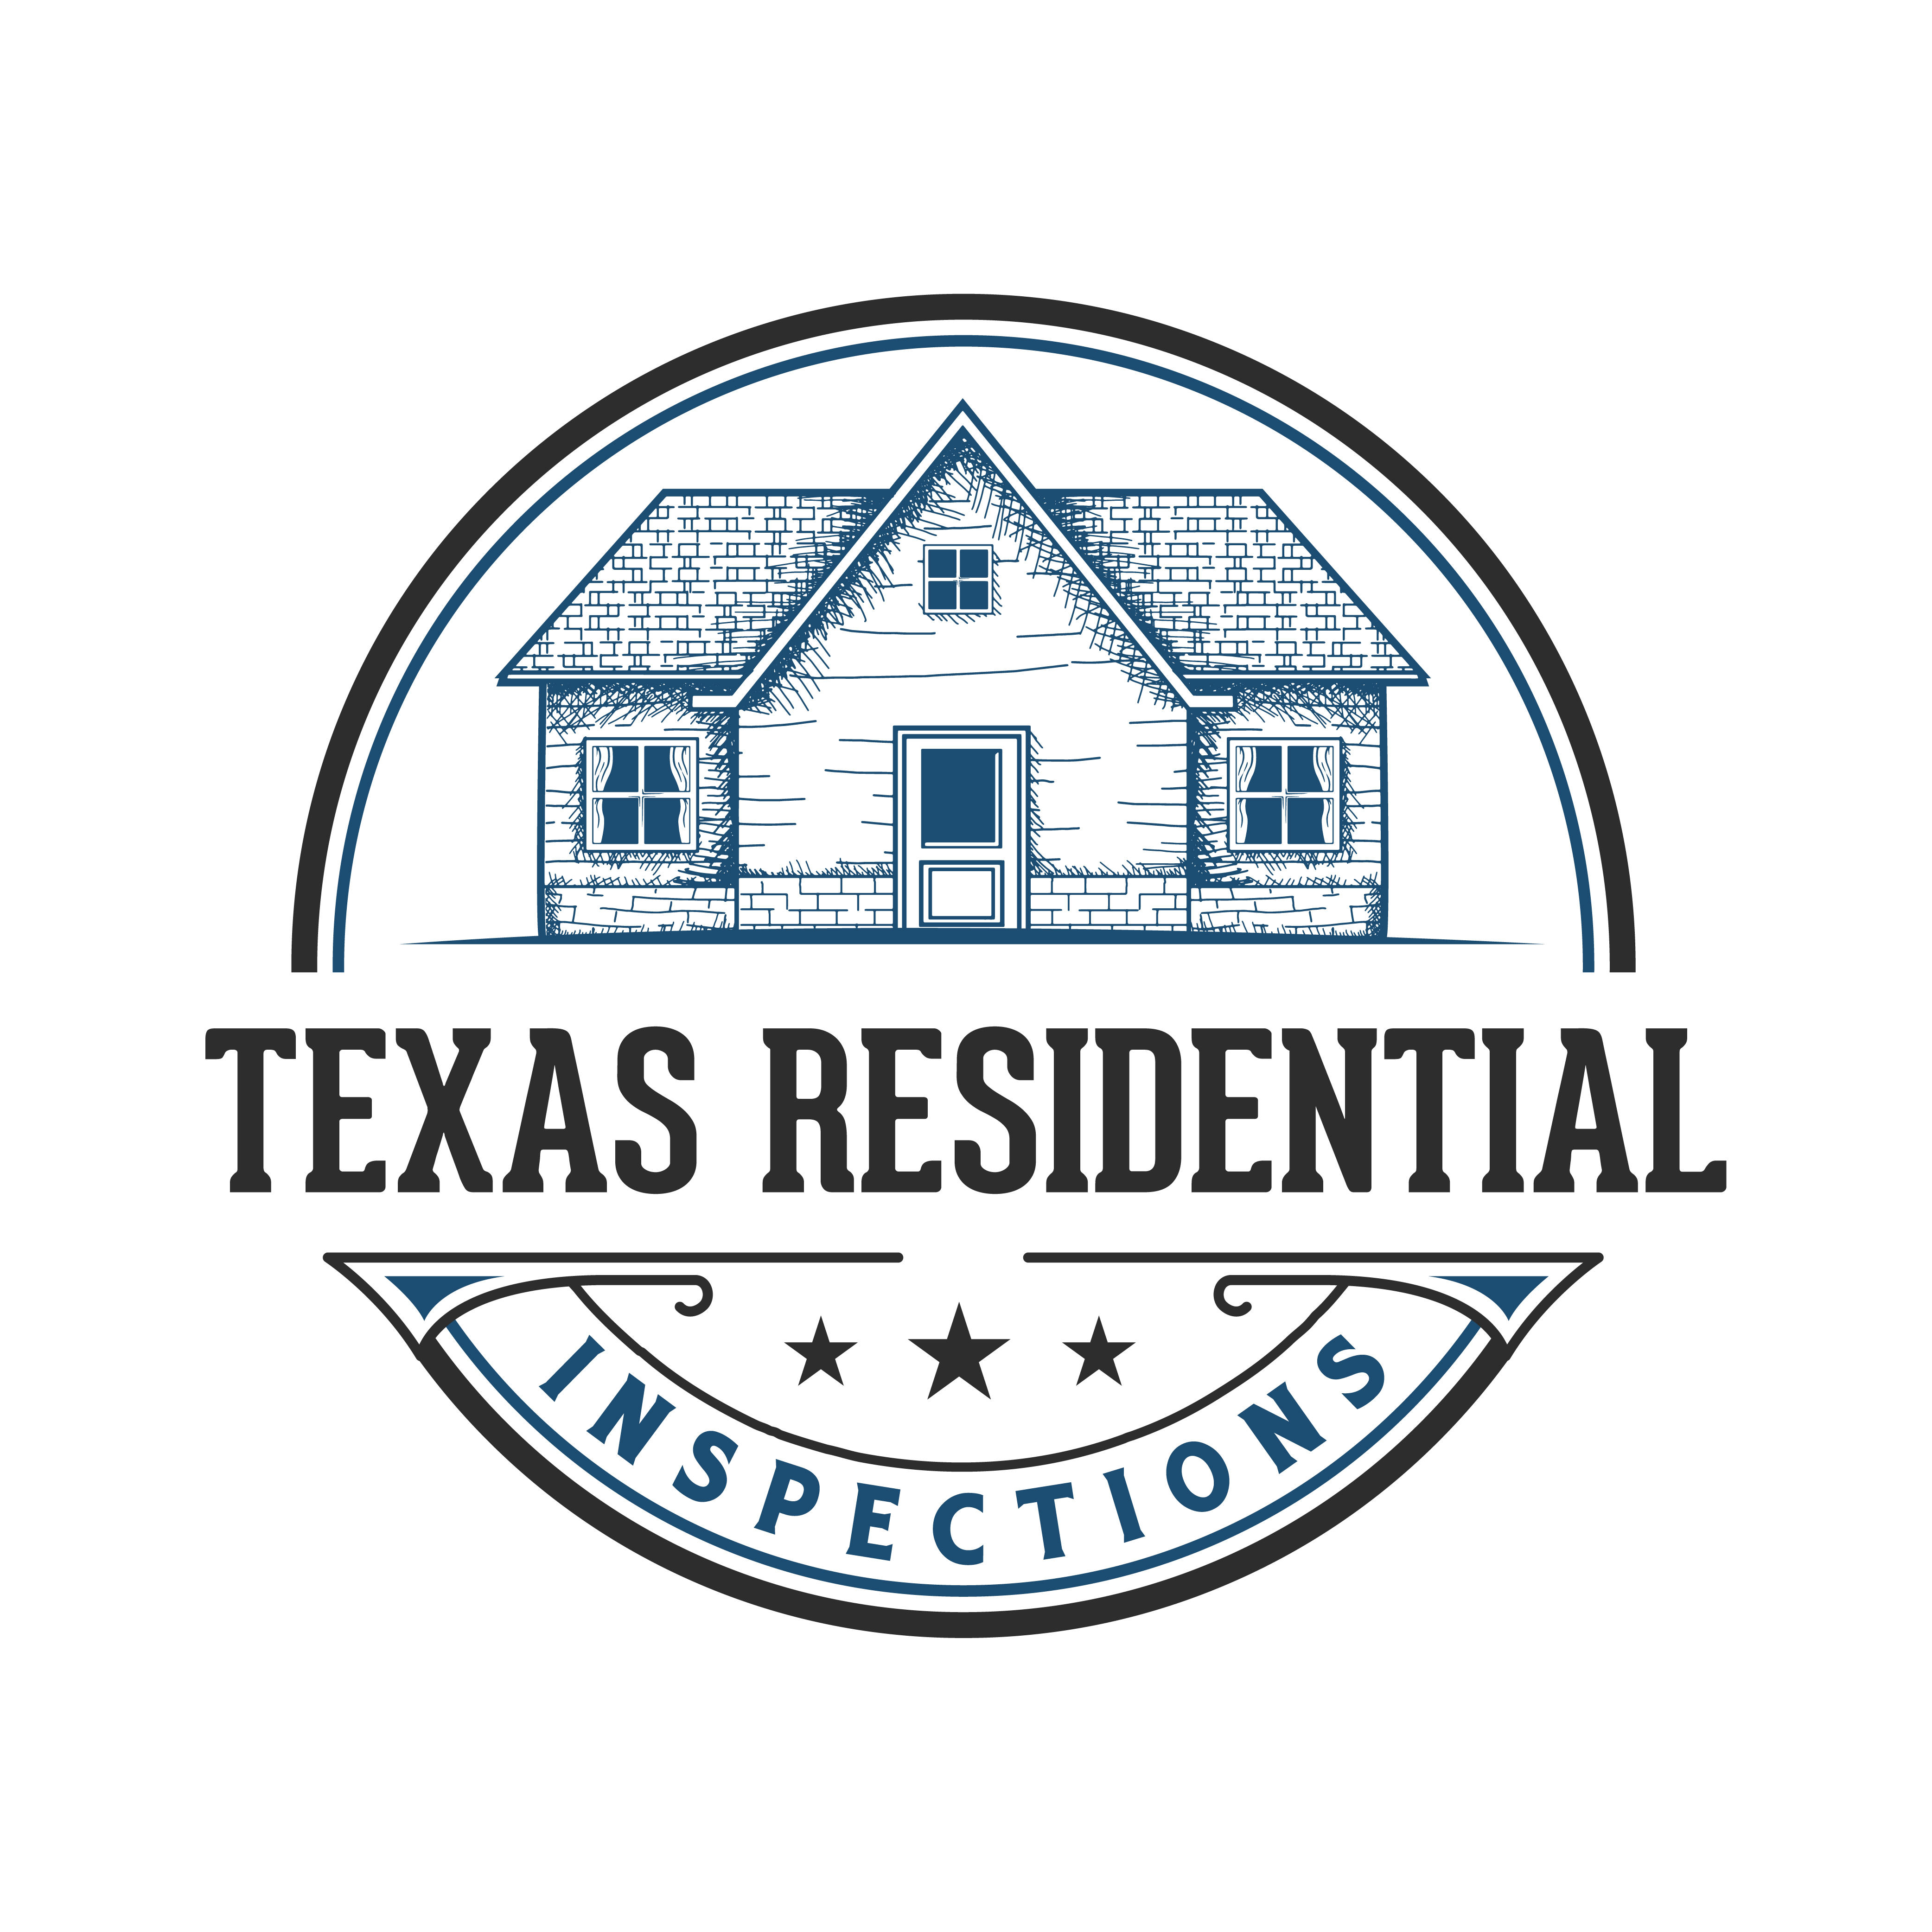 Texas Residential Inspections image 4